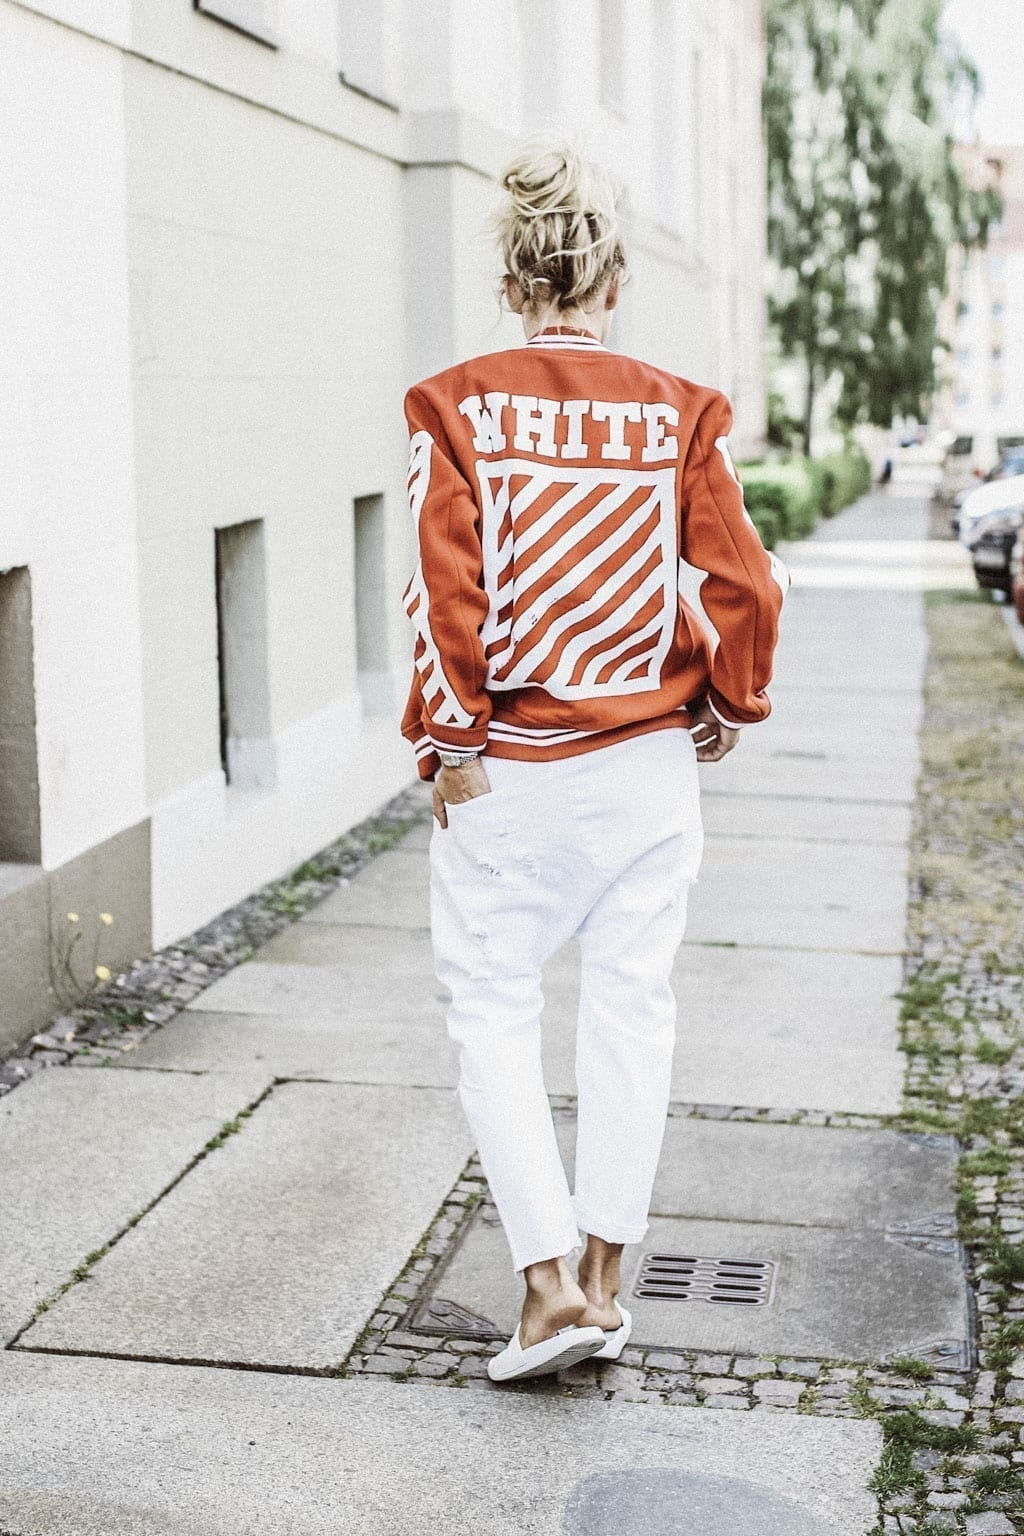 Constantly-K-karin-kaswurm-white-red-rieger-jacket-salzburg-fashion-street-style-8368